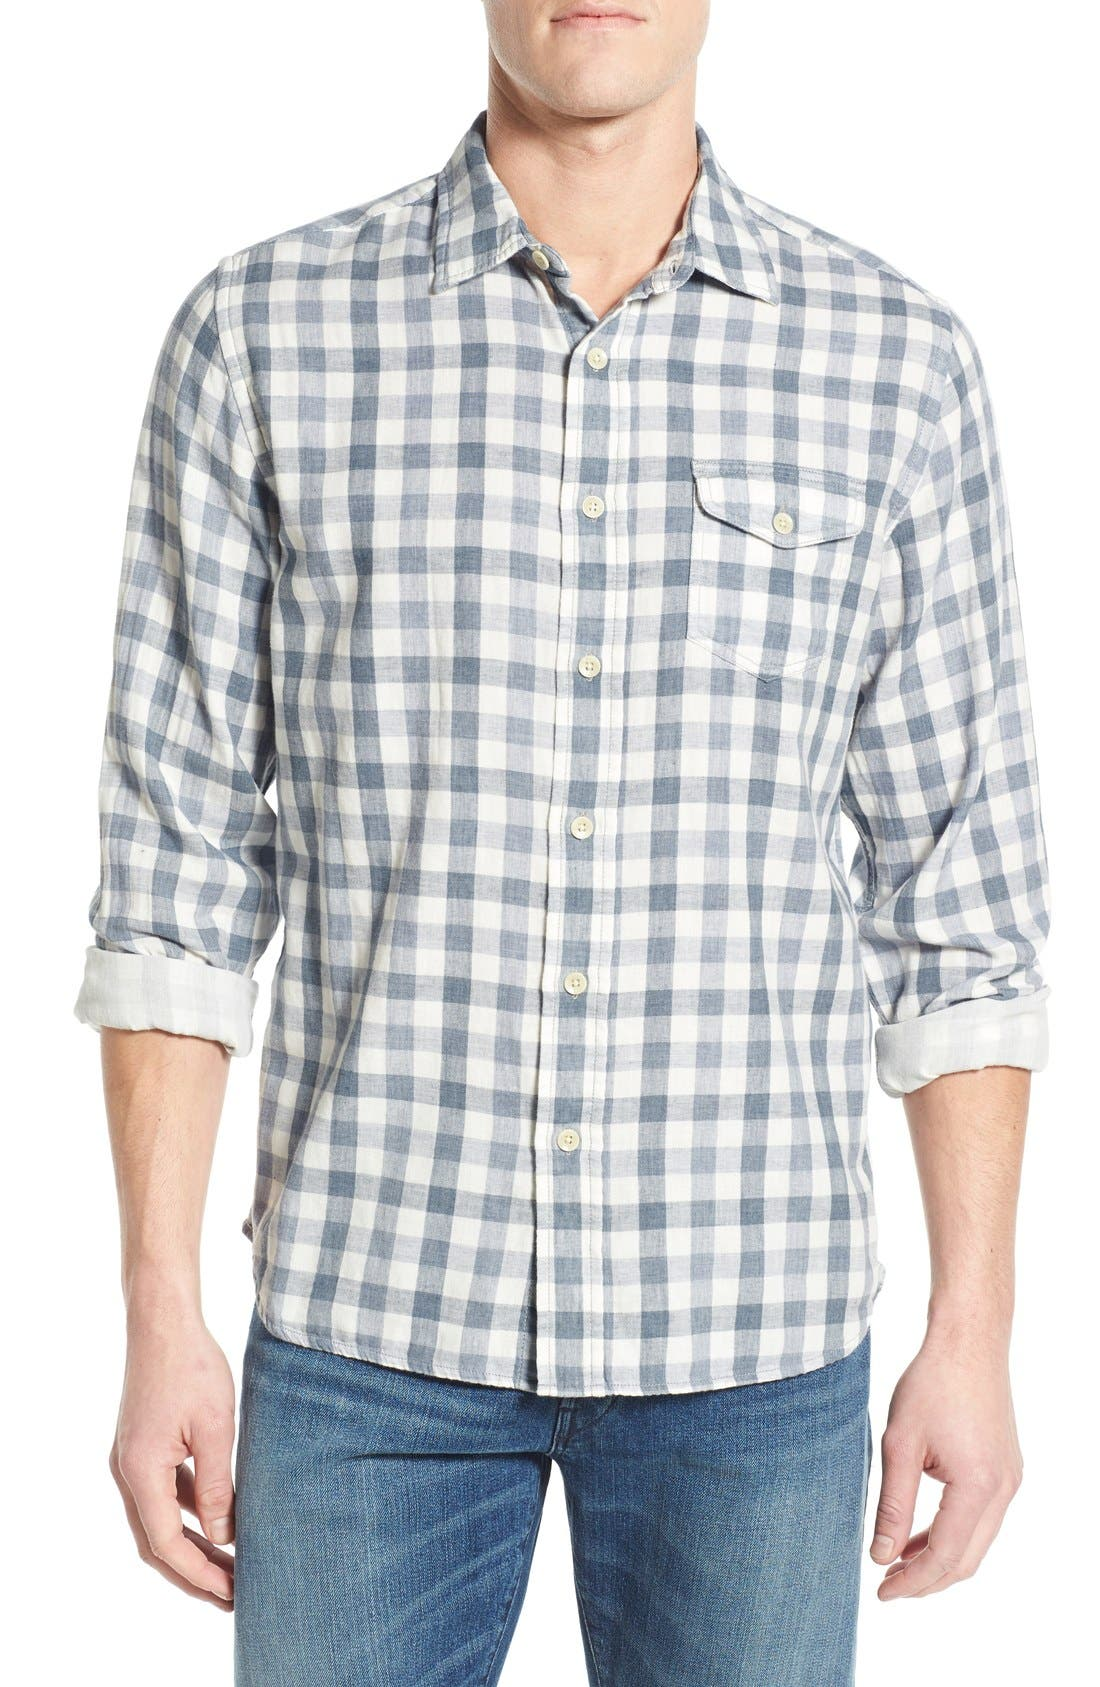 Grayers 'Denby' Trim Fit Double Woven Sport Shirt